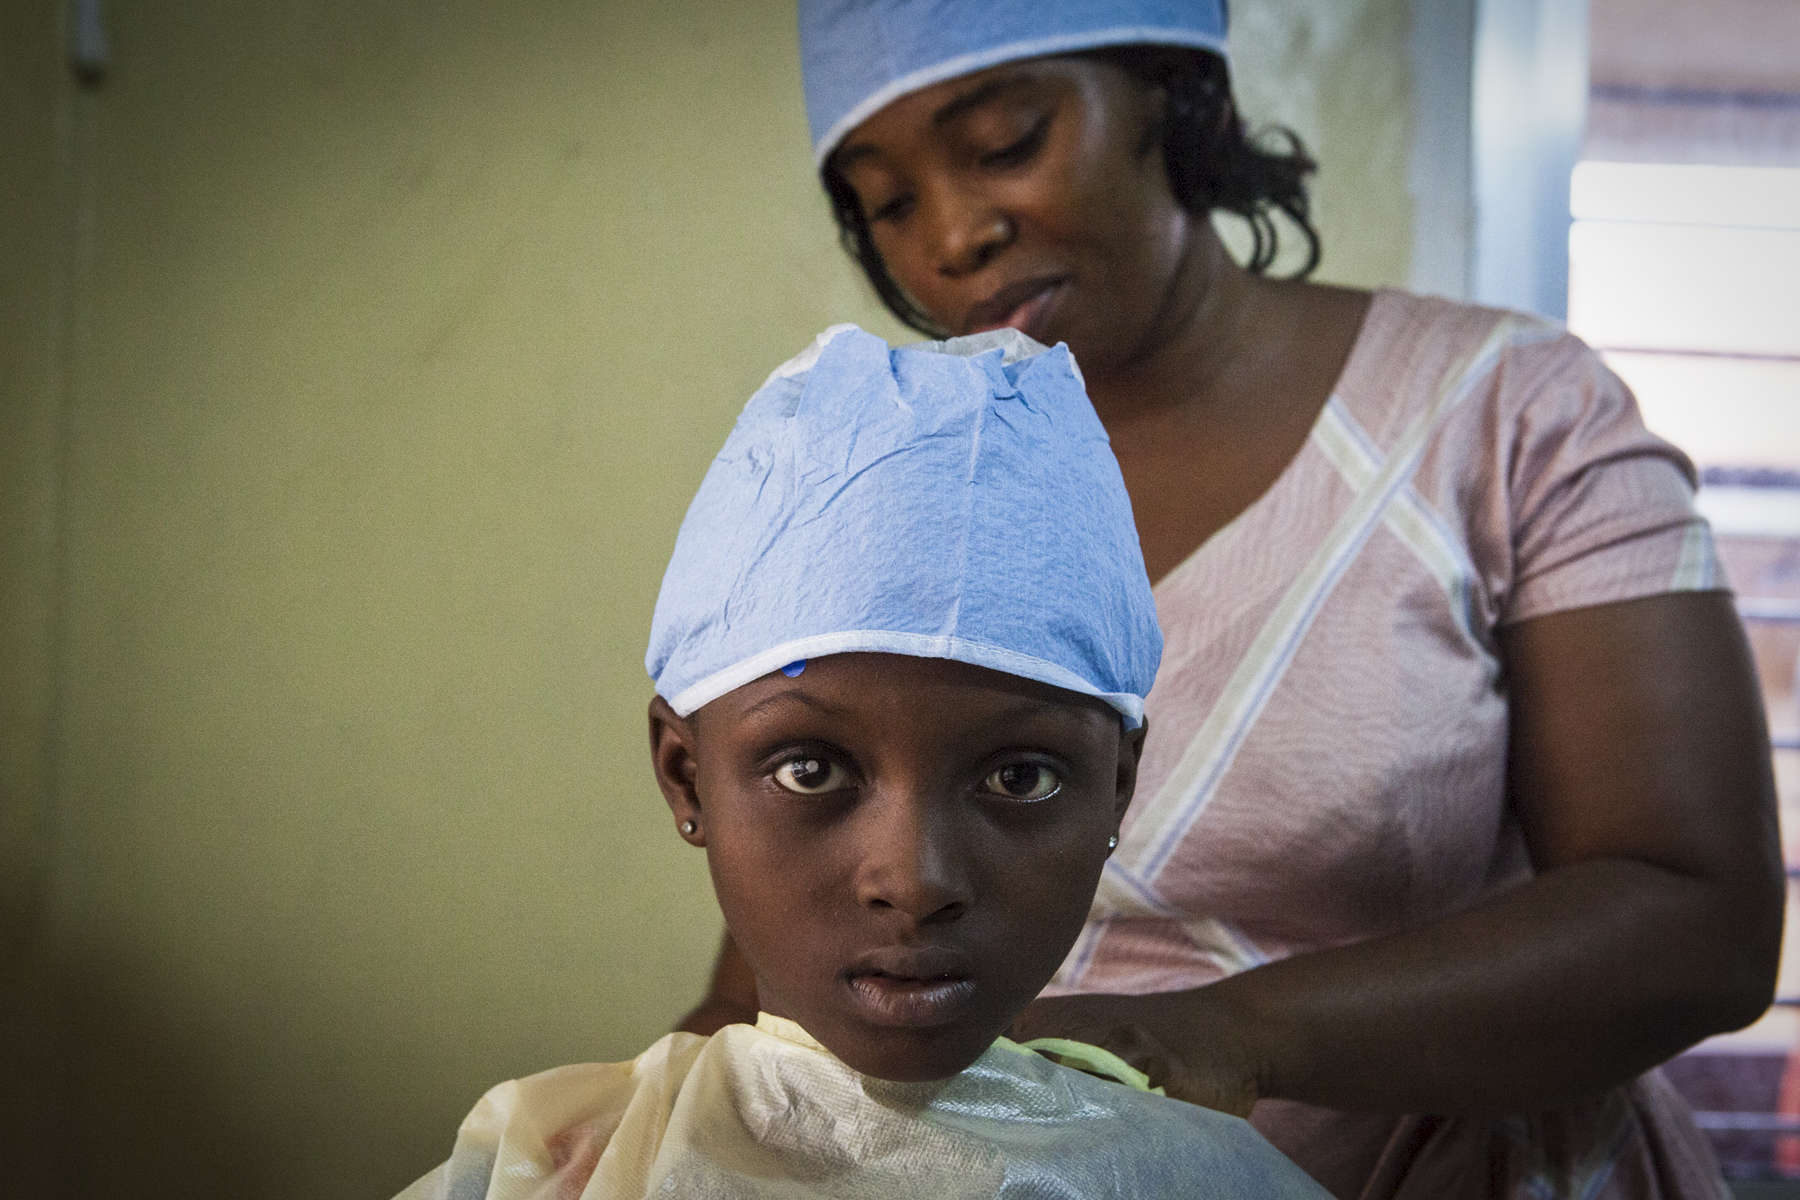 Aminata Conteh, 8, puts on a hospital gown before doctors remove fluid from her problematic right eye for testing at the Kissy United Methodist Church Eye Hospital in Freetown, Sierra Leone. Long after recovering from the largest Ebola outbreaks in history, survivors continue to experience debilitating complications including uvetis, an inflammation of the eye, leading to severe cataracts leaving the survivor with little to no sight in the affected eye. Doctors from Emory University Hospital have traveled to Sierra Leone to restore the sight of survivors suffering from severe cataracts in an effort to help them return to a more normal life.